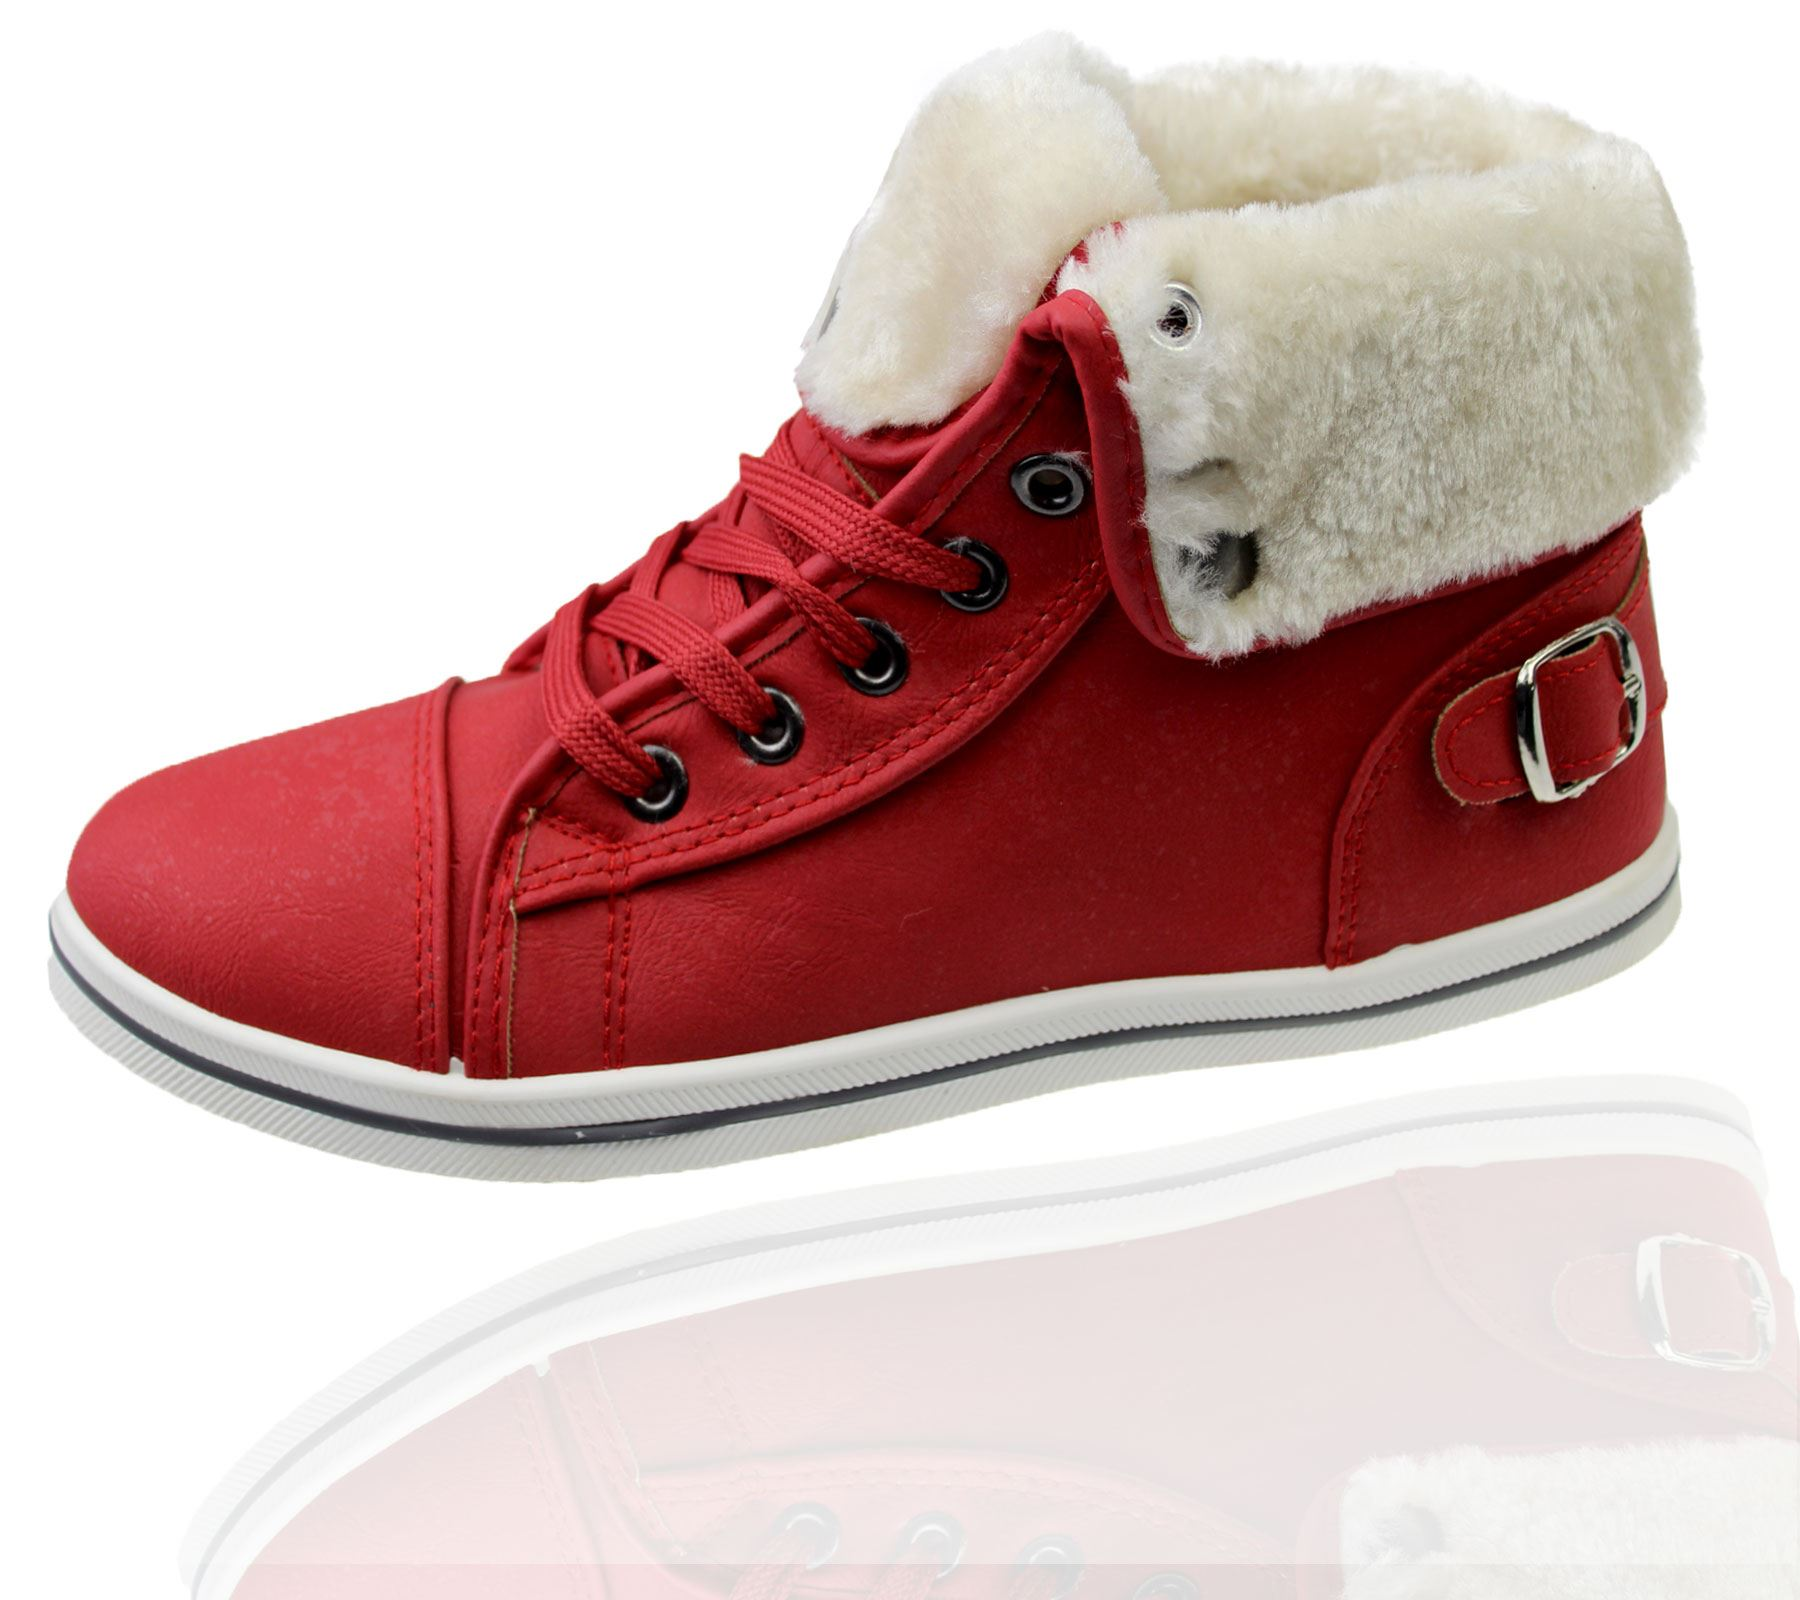 Girls-Boots-Womens-Warm-Lined-High-Top-Ankle-Trainer-Ladies-Winter-Shoes-Size miniatura 49